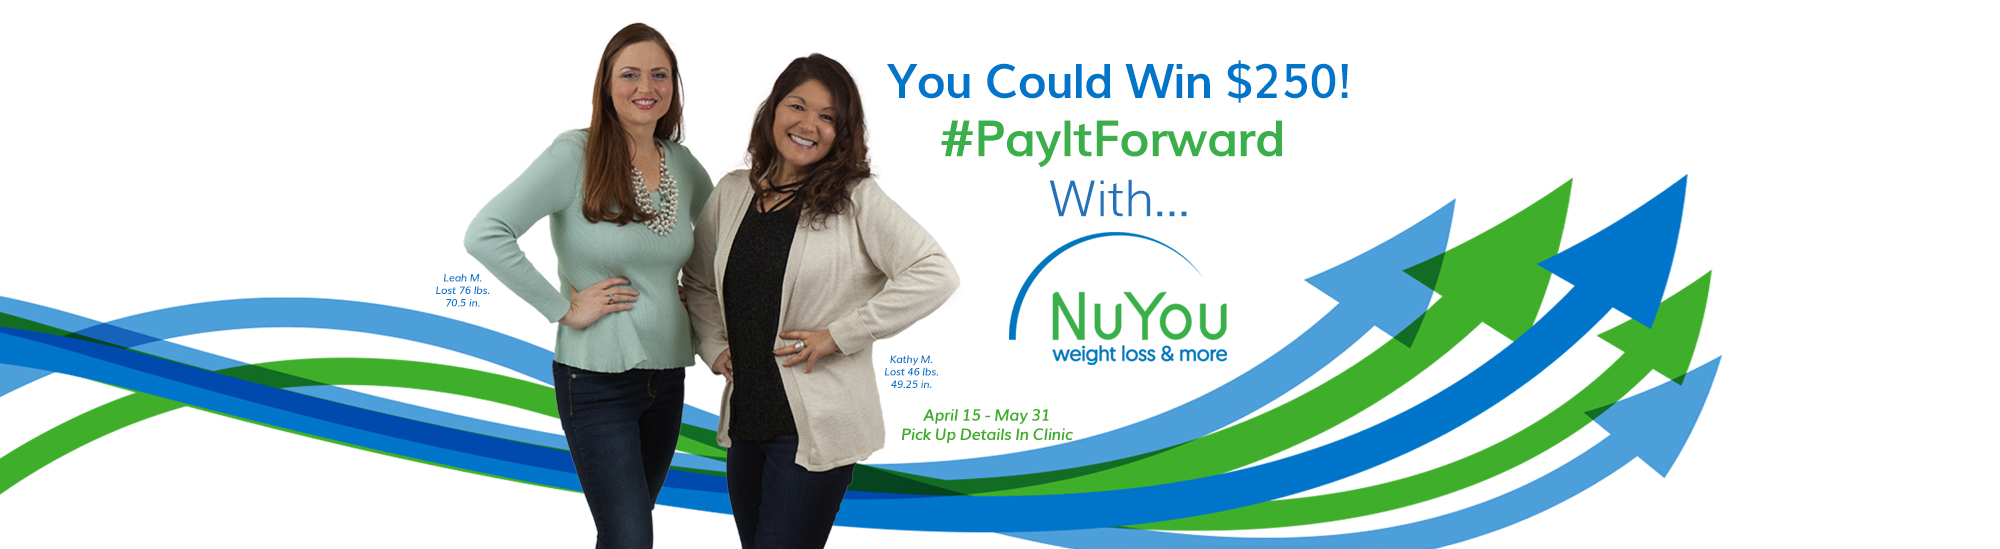 Pay It Forward with NuYou! Refer a friend and get a chance to win $250! Details in clinic.